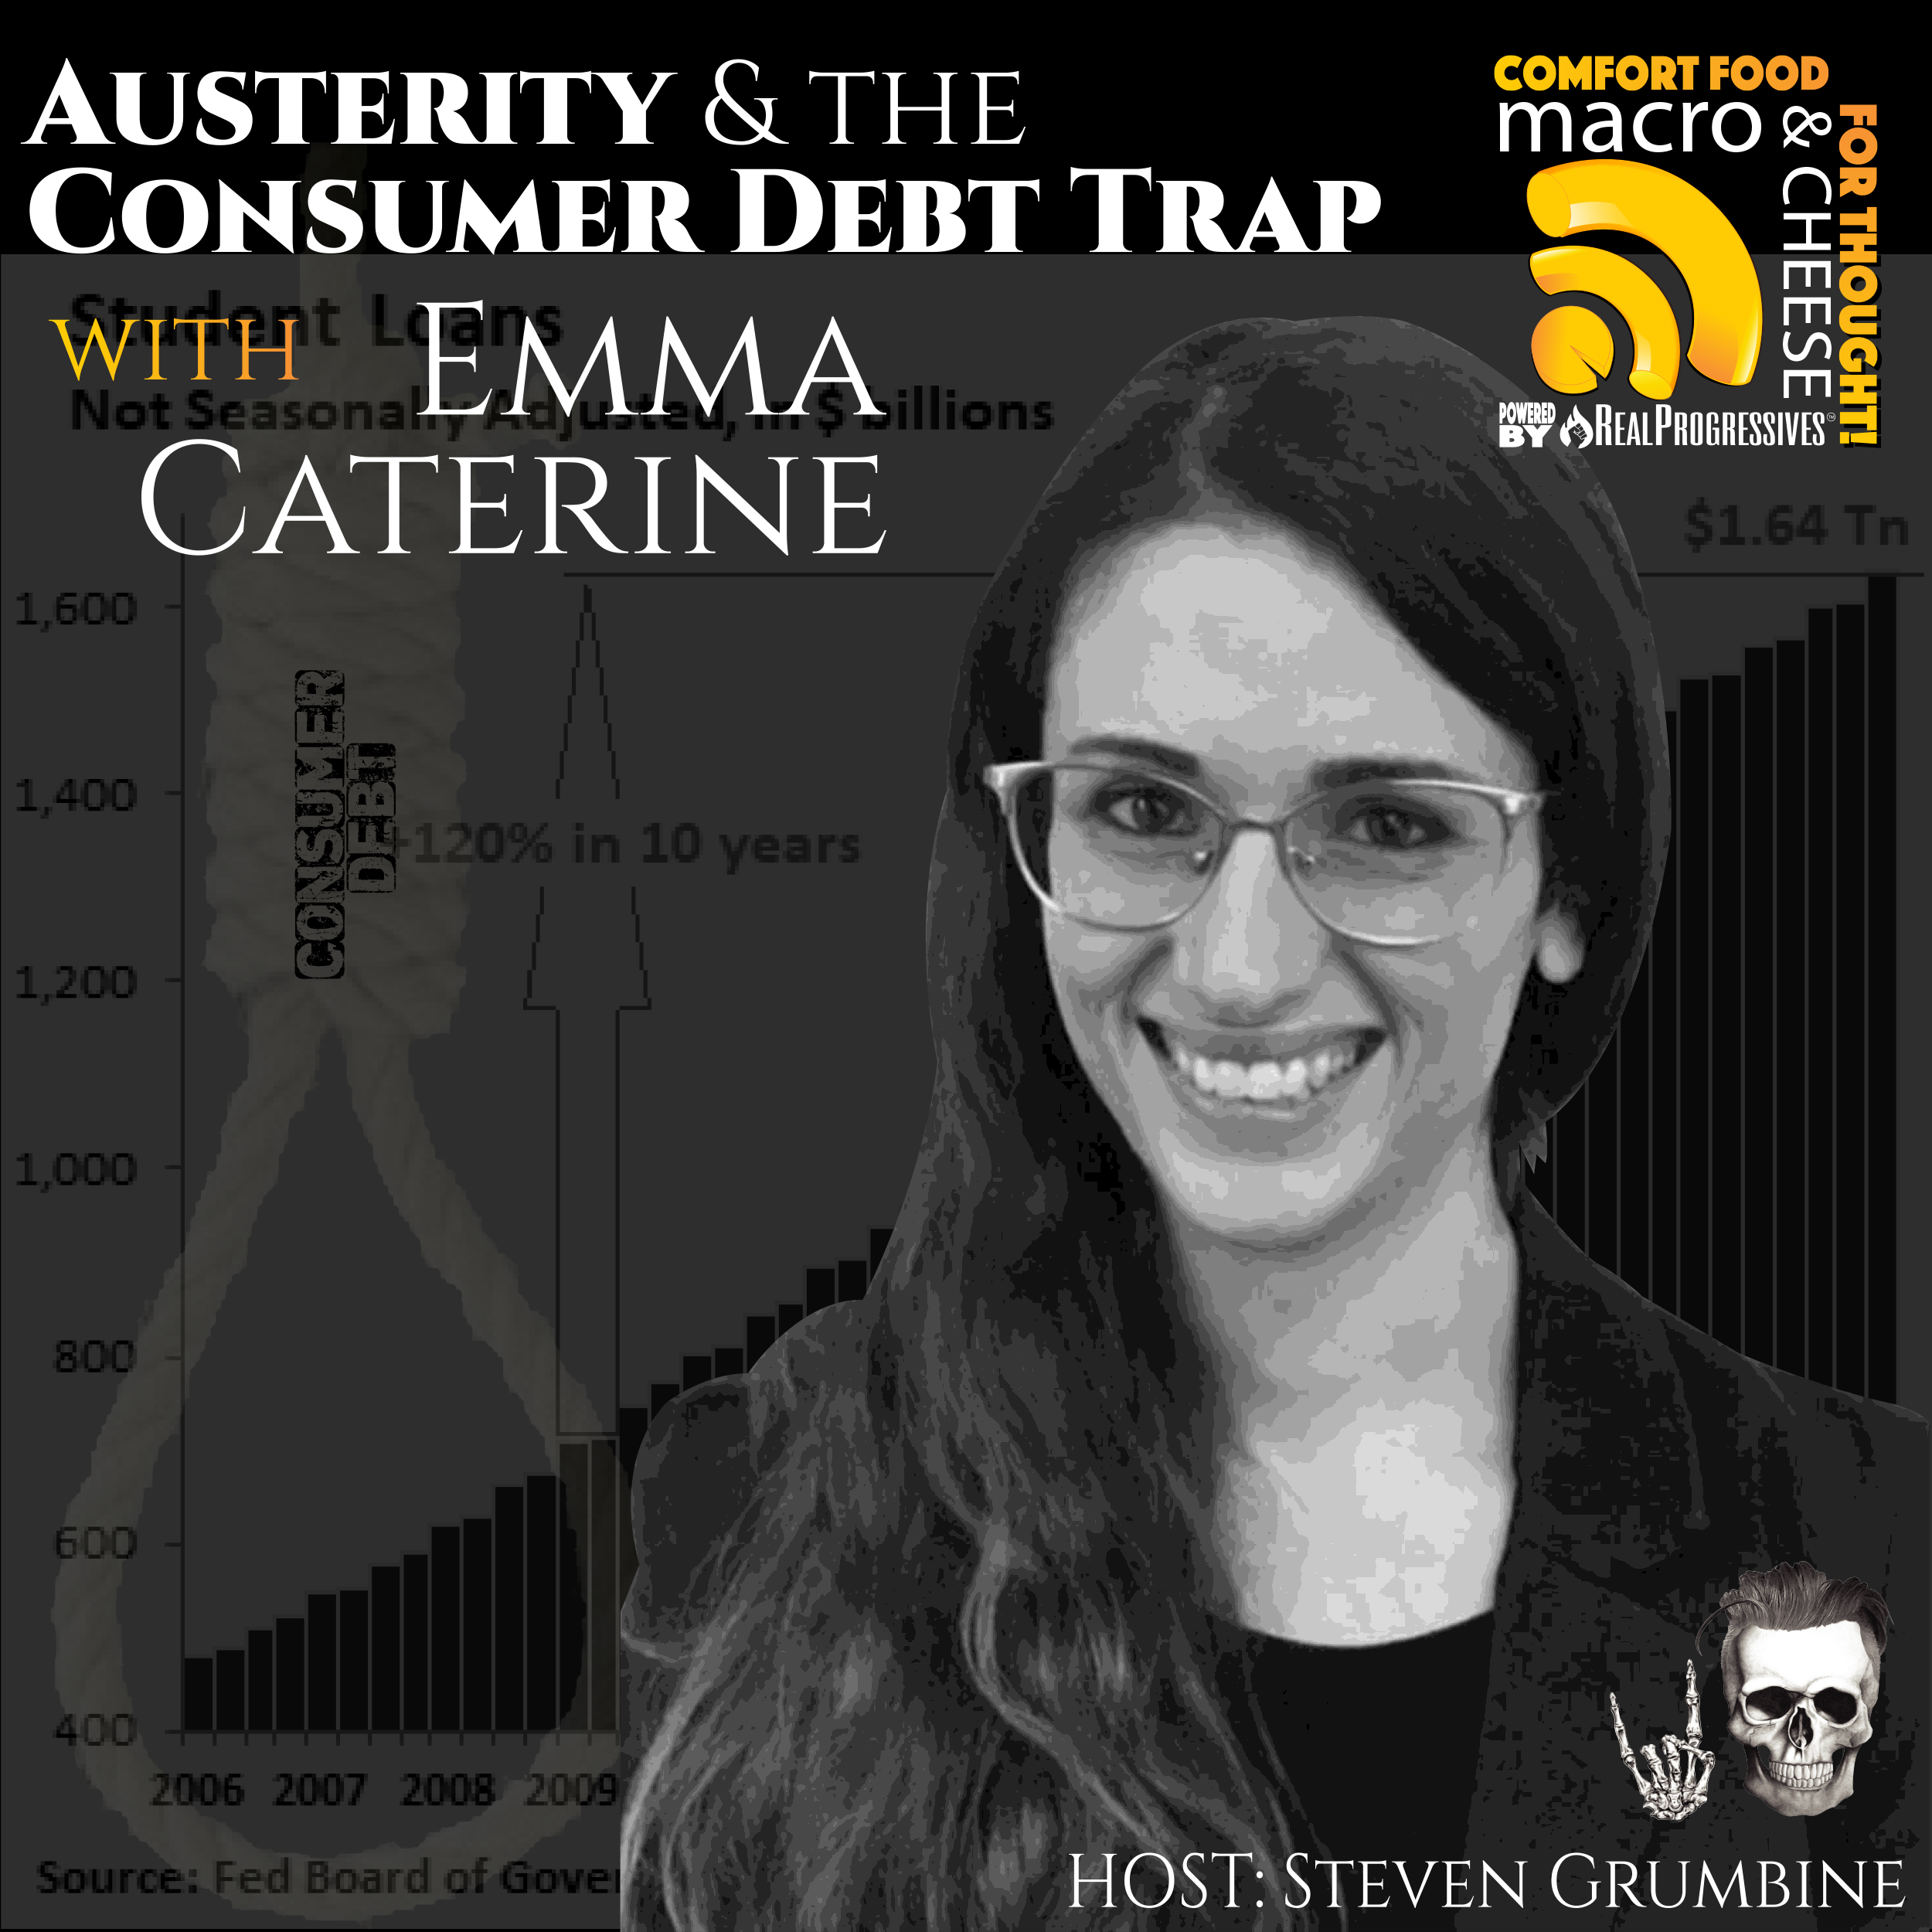 Austerity and the Consumer Debt Trap with Emma Caterine